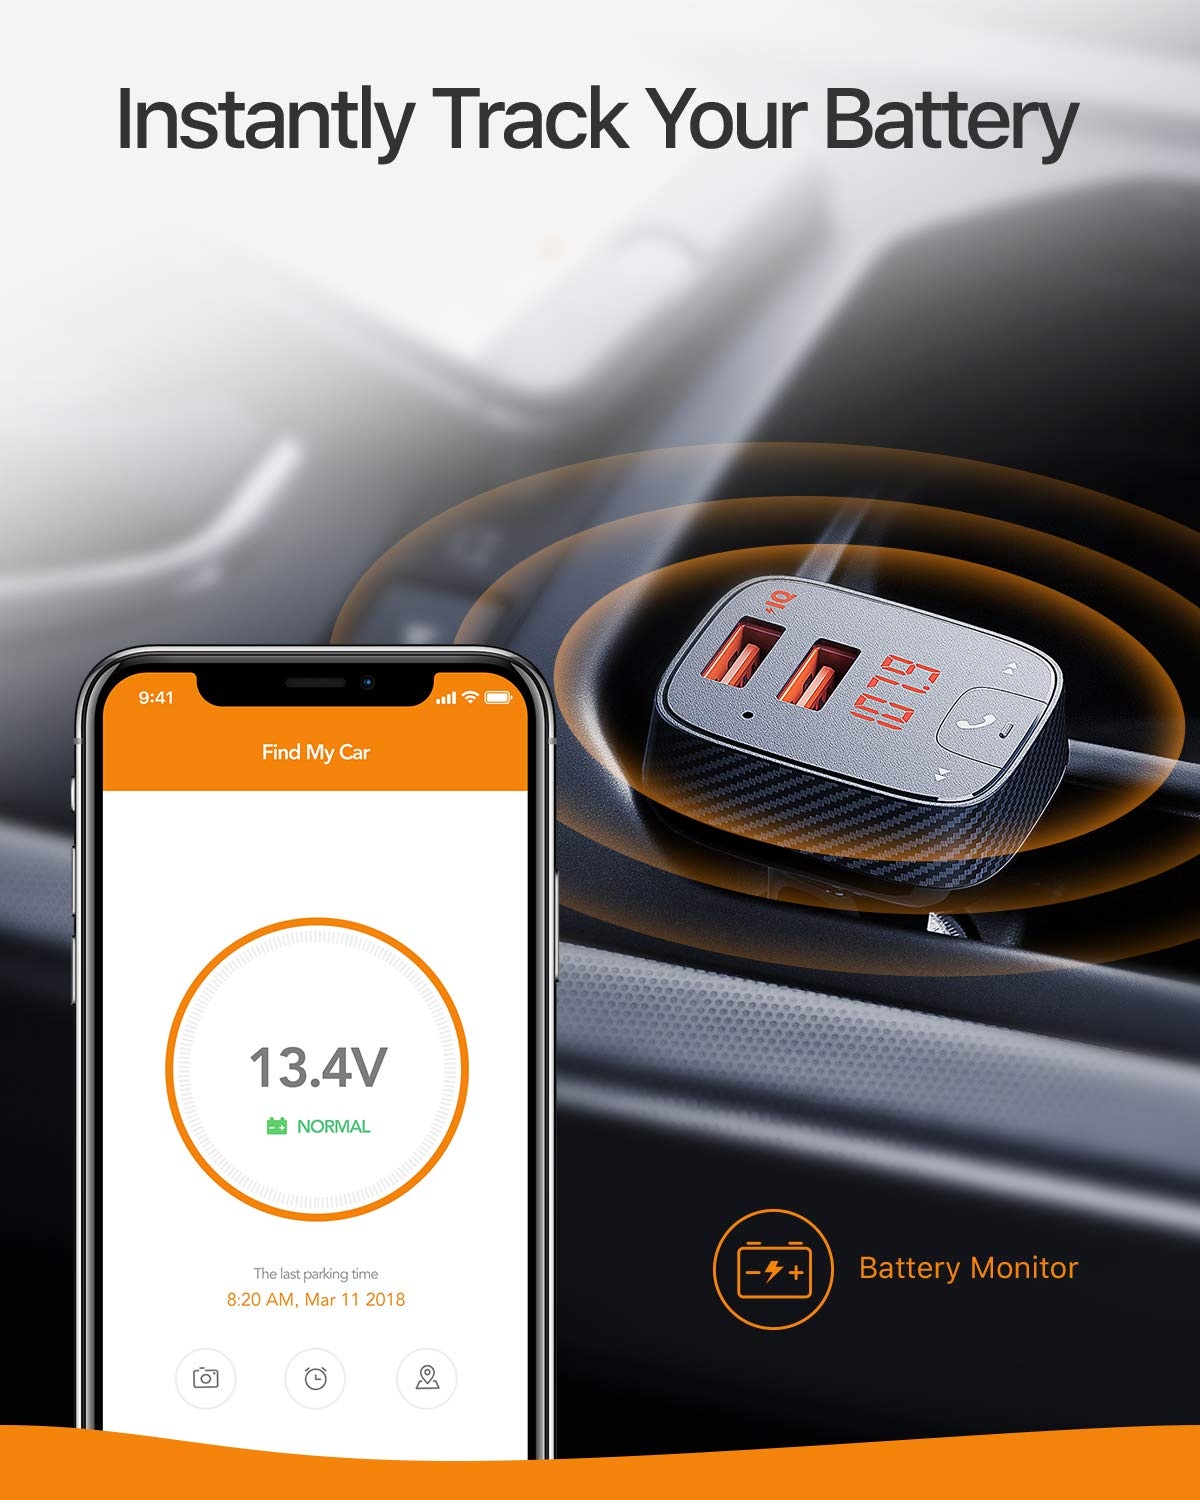 Roav SmartCharge F2, by Anker, FM Transmitter, Bluetooth Receiver, Car Charger with Bluetooth 4.2, Car Locator, App Support, 2 USB Ports, PowerIQ, AUX Output, and USB Drive to Play MP3 Files by ROAV (Image #7)